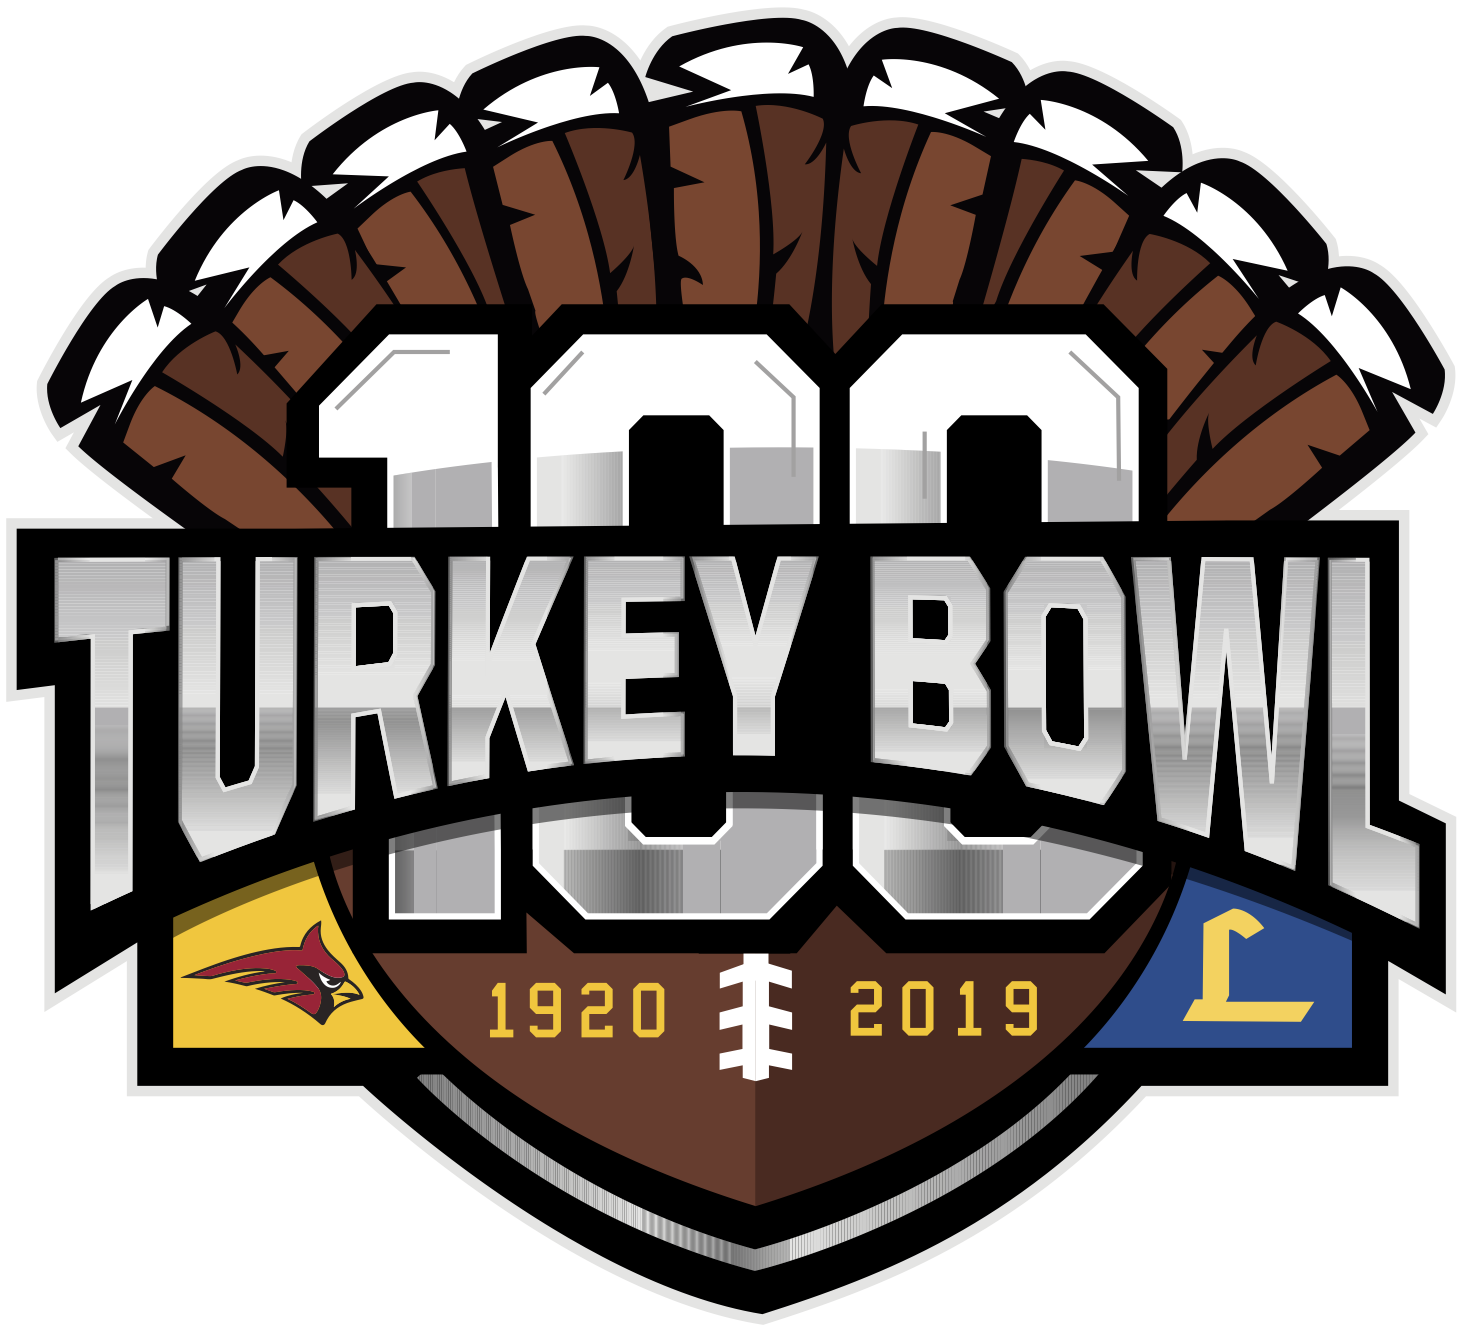 100th Annual Turkey Bowl - Calvert Hall Cardinals vs Loyola DonsThanksgiving Day, November 28thPlace your ad in the official game day program and help support St. Ignatius Loyola AcademyAds due by October 28, 2019